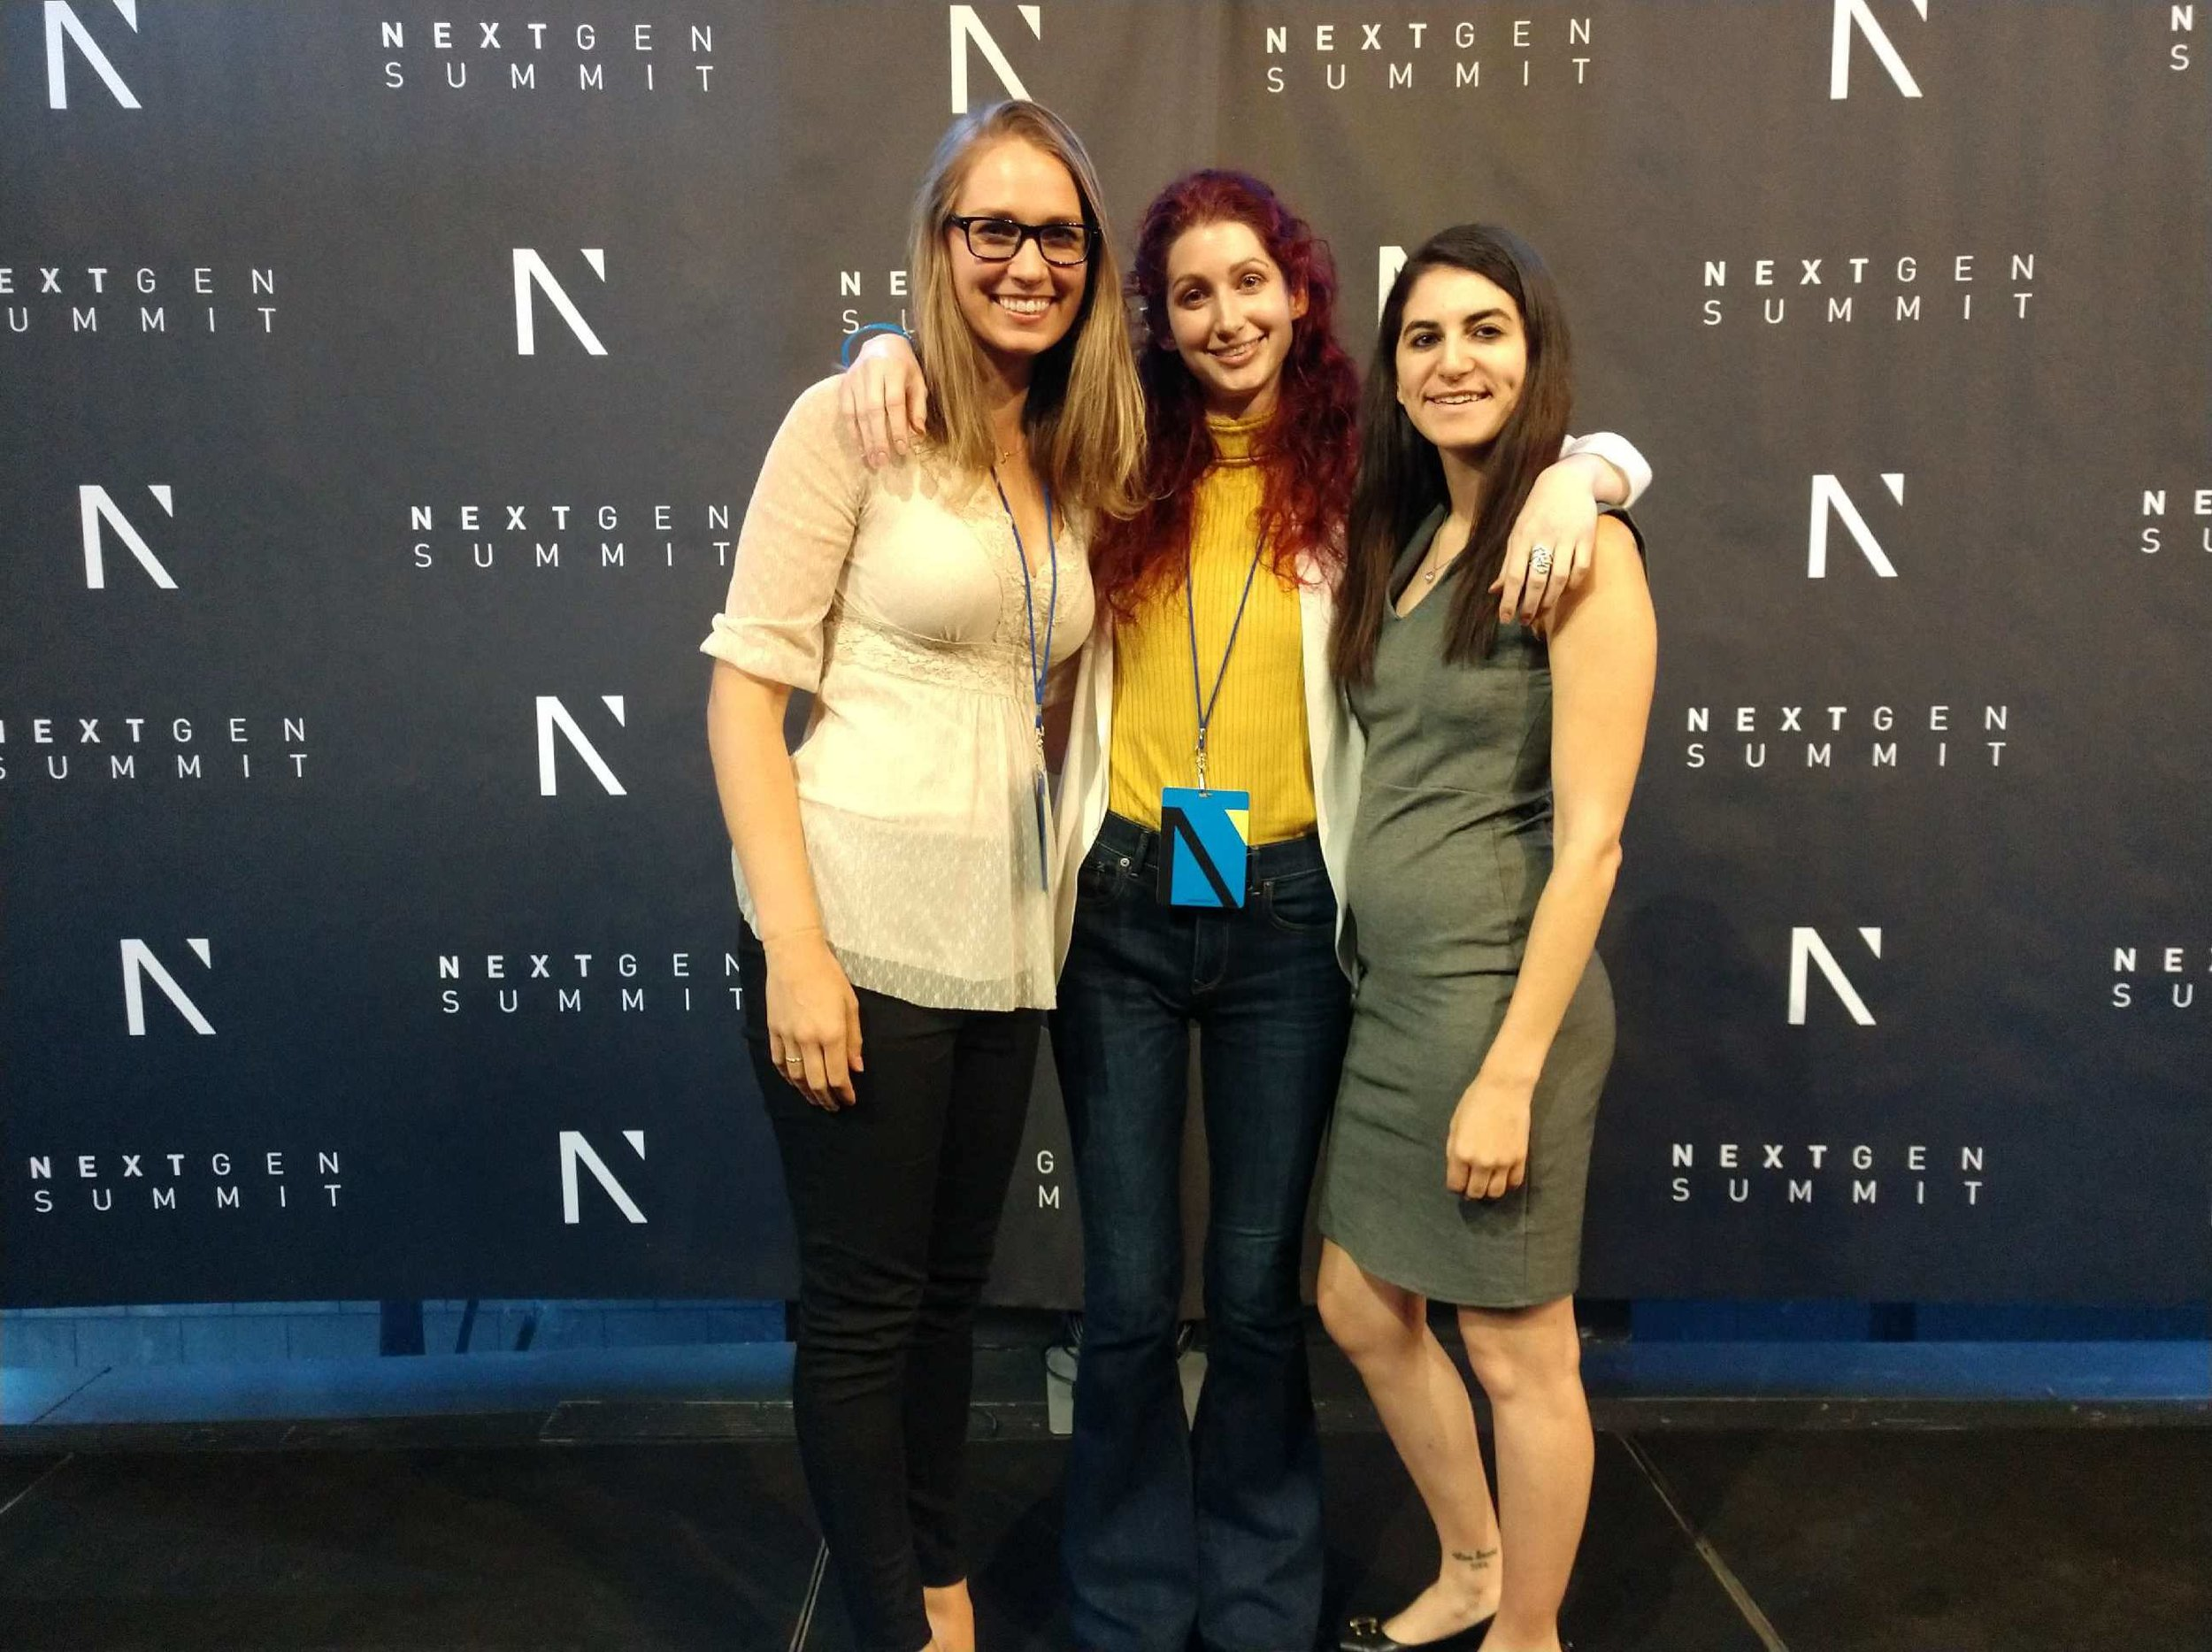 Cassandra Green of CoachCrate with Geena Matuson (@geenamatuson) and Mallory Rothstein of Learn What Matters Foundation at the June, 2019 Next Gen Summit #NGS2019 in NYC.